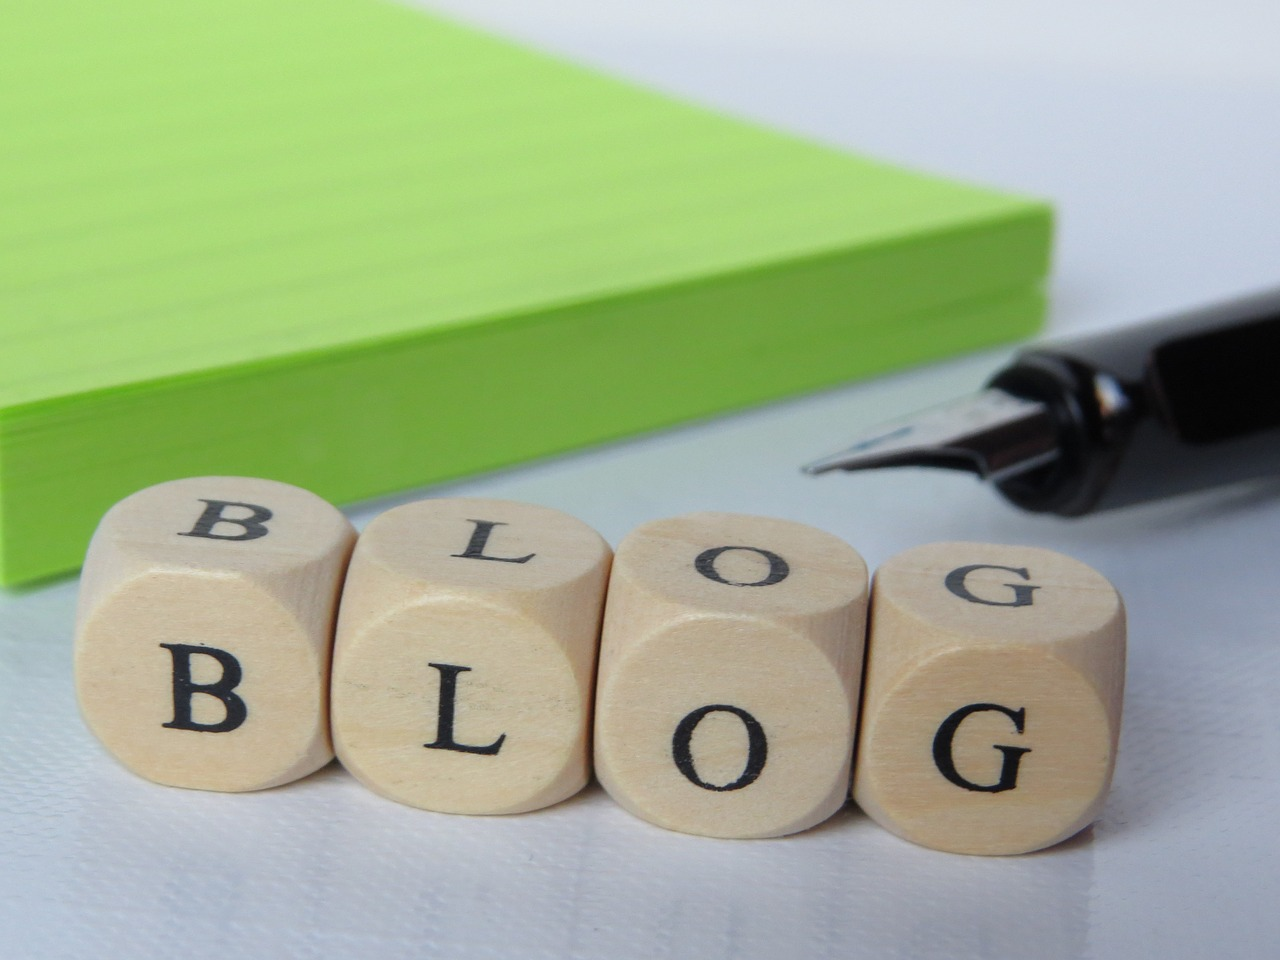 7 Crucial Mistakes to Avoid While Blogging